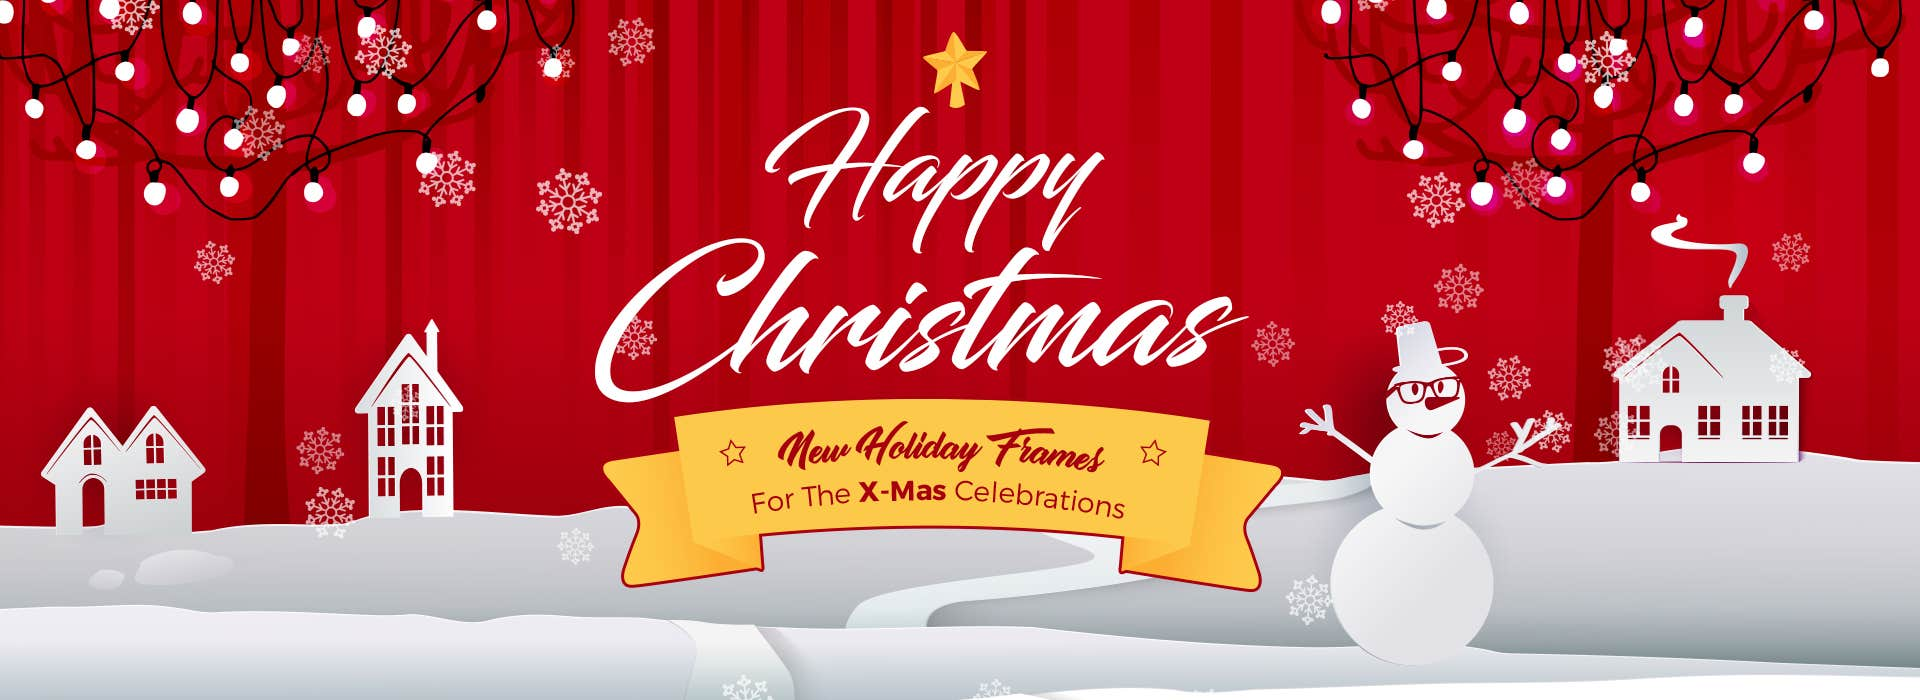 Happy Christmas: New Holiday Frames For The X-Mas Celebrations